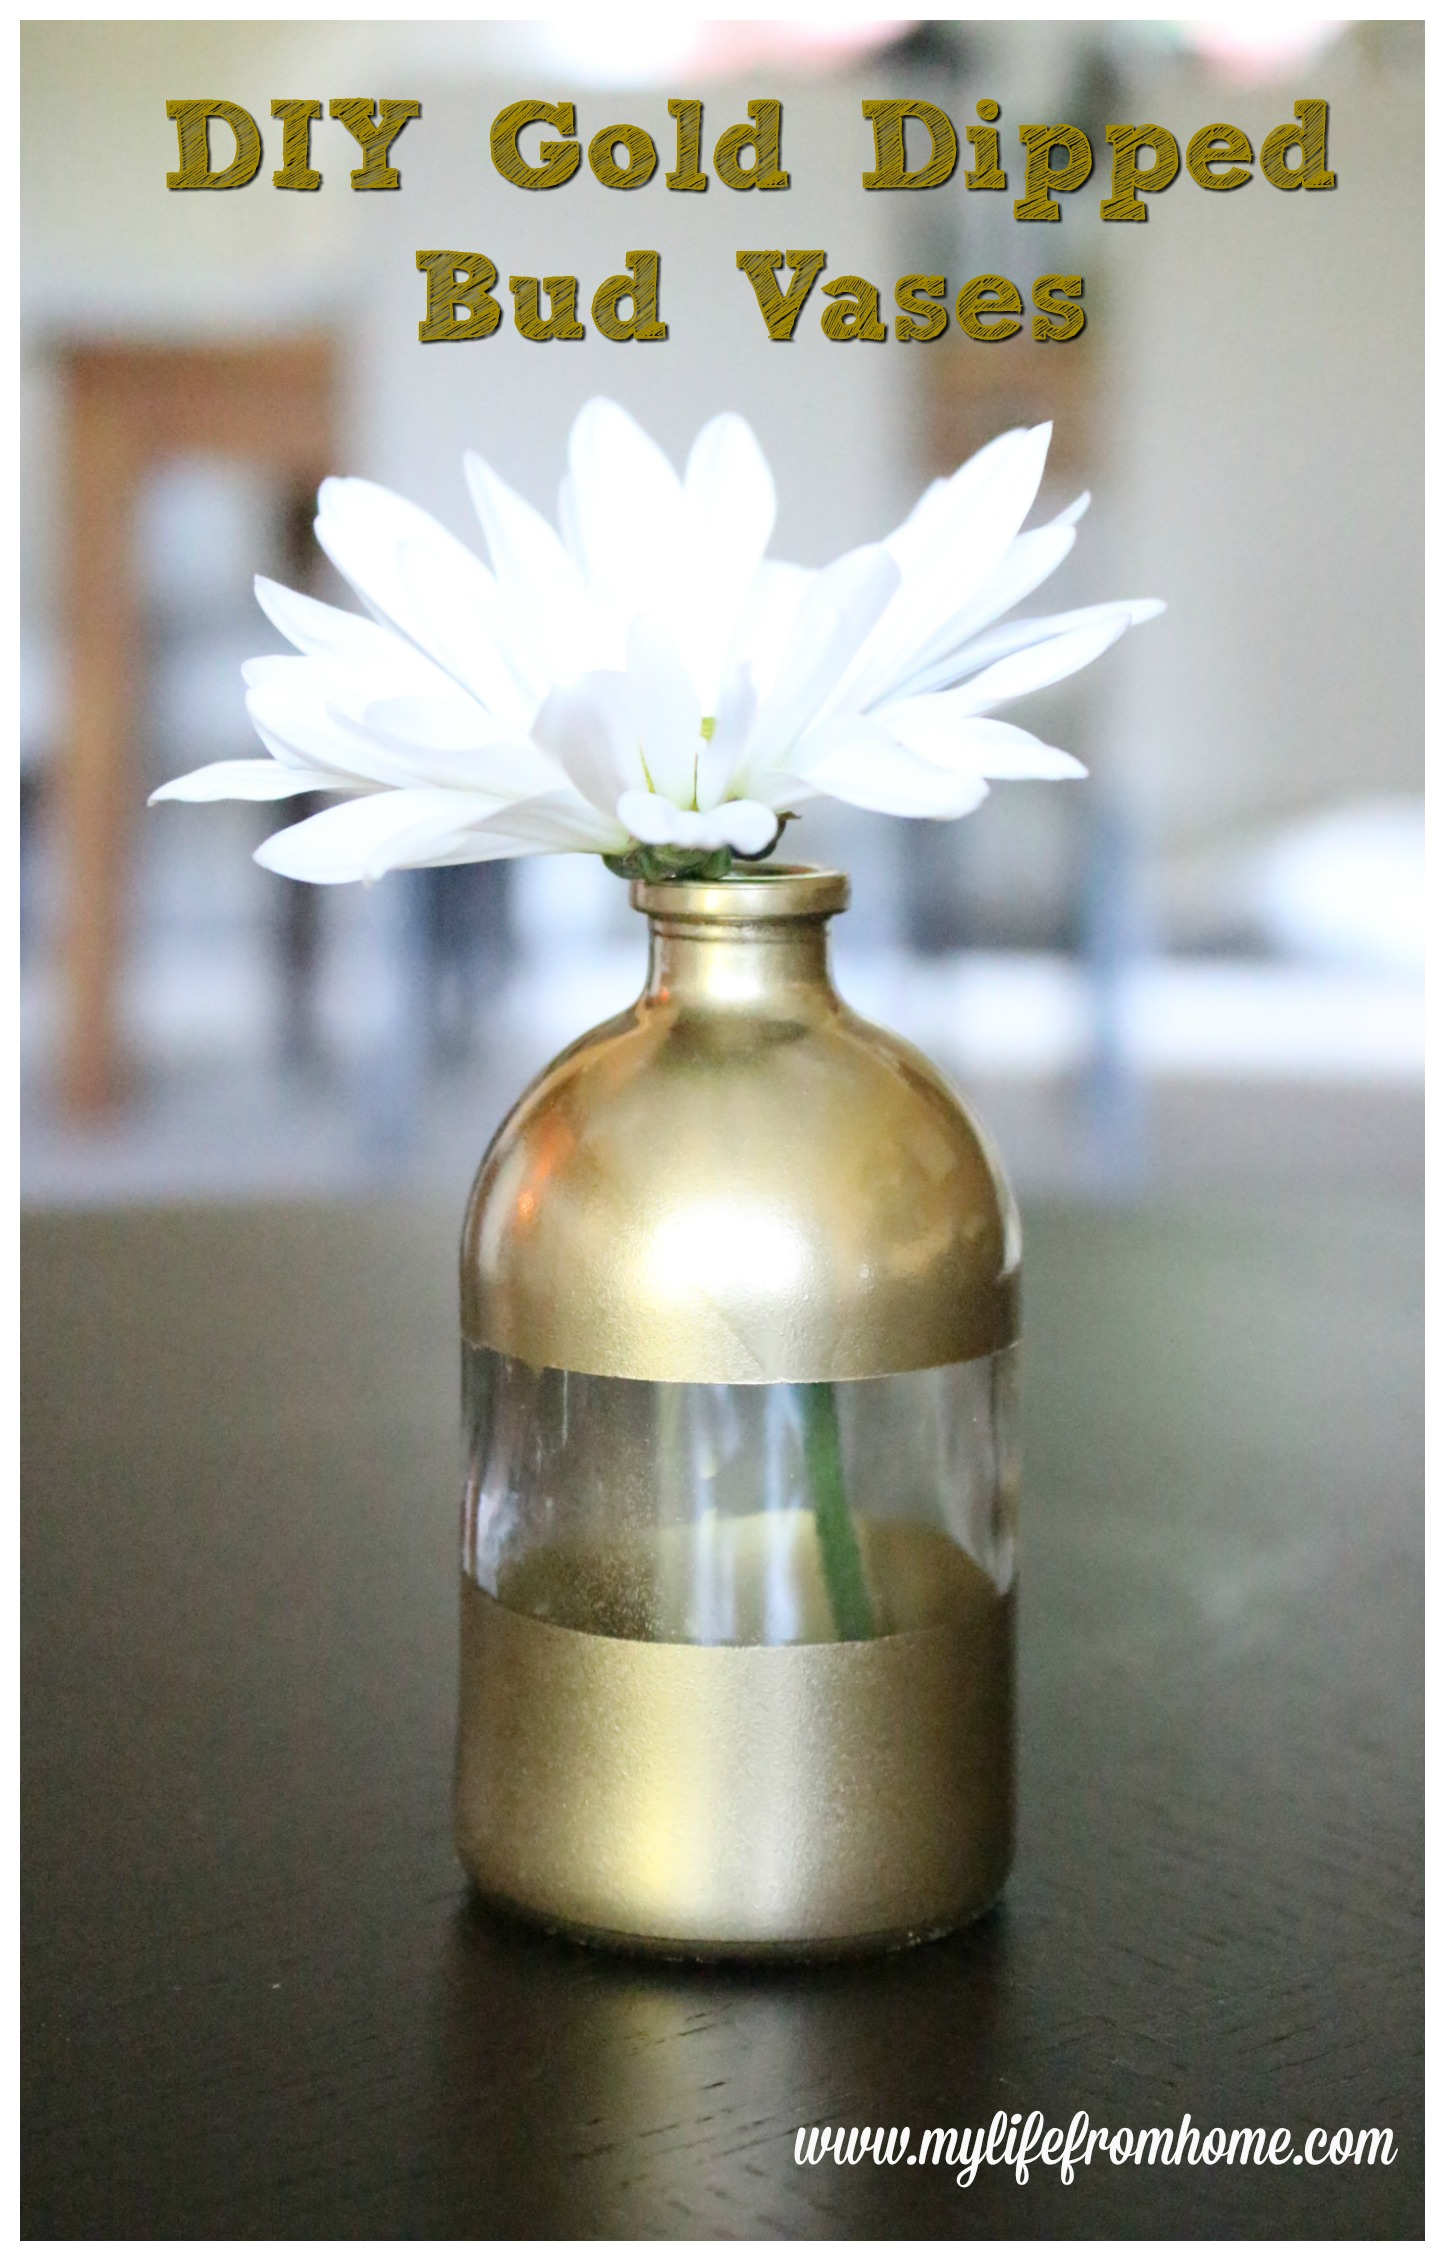 DIY Gold Dipped Bud Vases by www.mylifefromhome.com